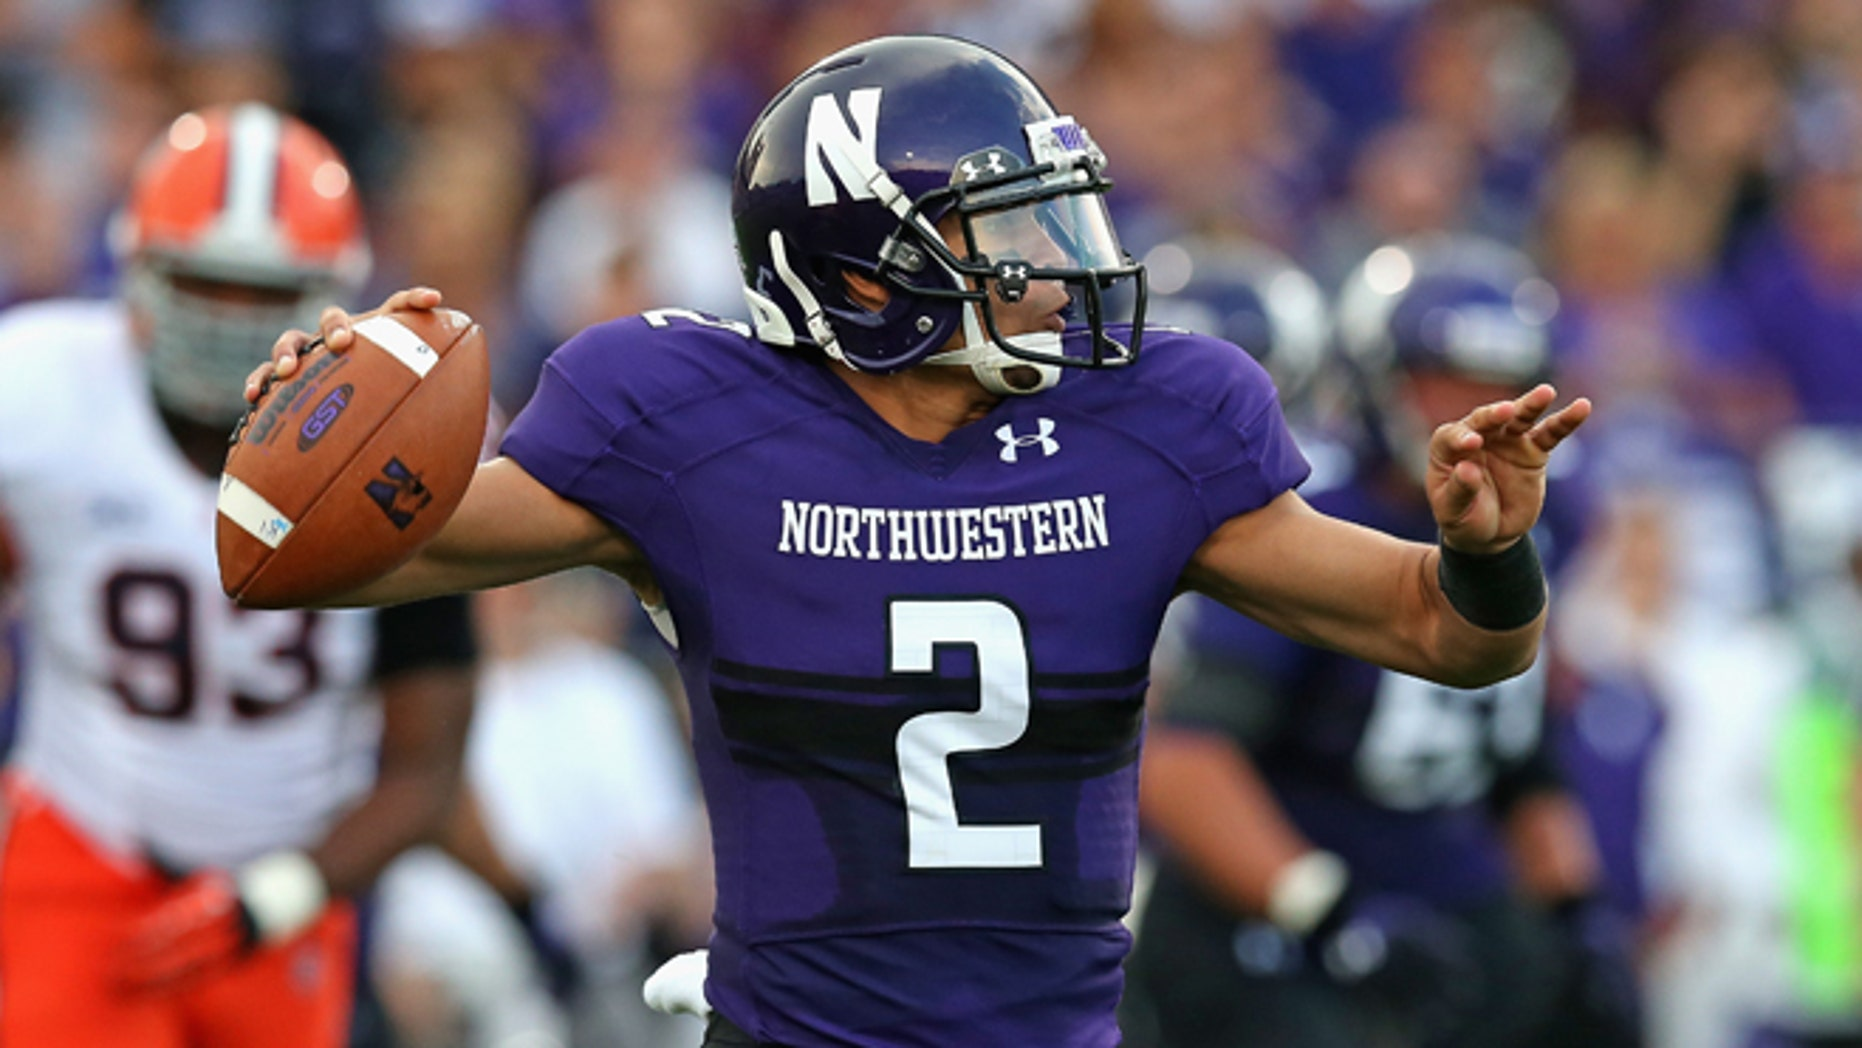 EVANSTON, IL - SEPTEMBER 07: Kain Colter #2 of the Northwestern Wildcats passes against the Syracuse Orange at Ryan Field on September 7, 2013 in Evanston, Illinois. (Photo by Jonathan Daniel/Getty Images)